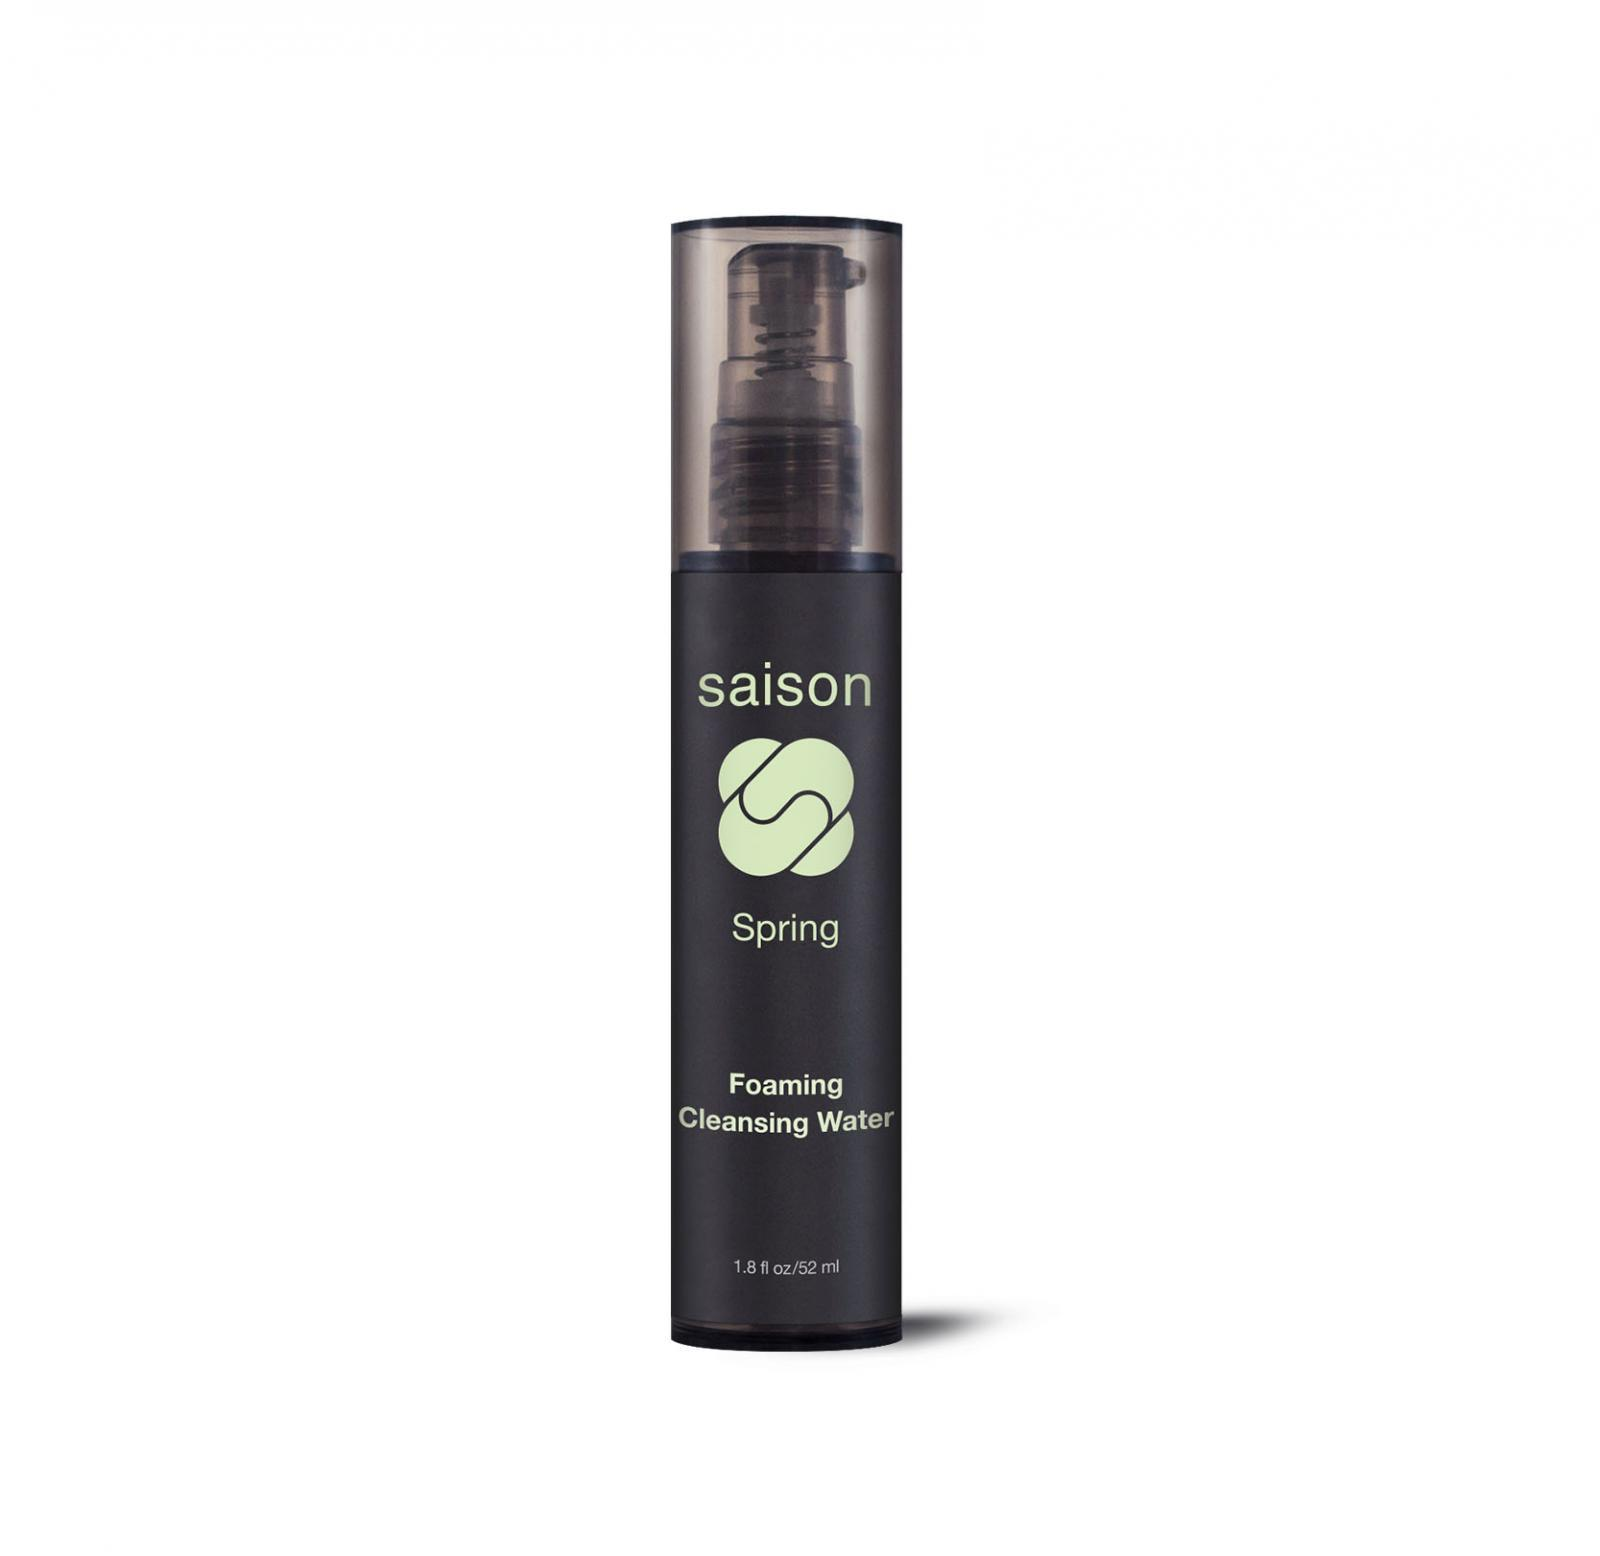 Spring Foaming Cleansing Water